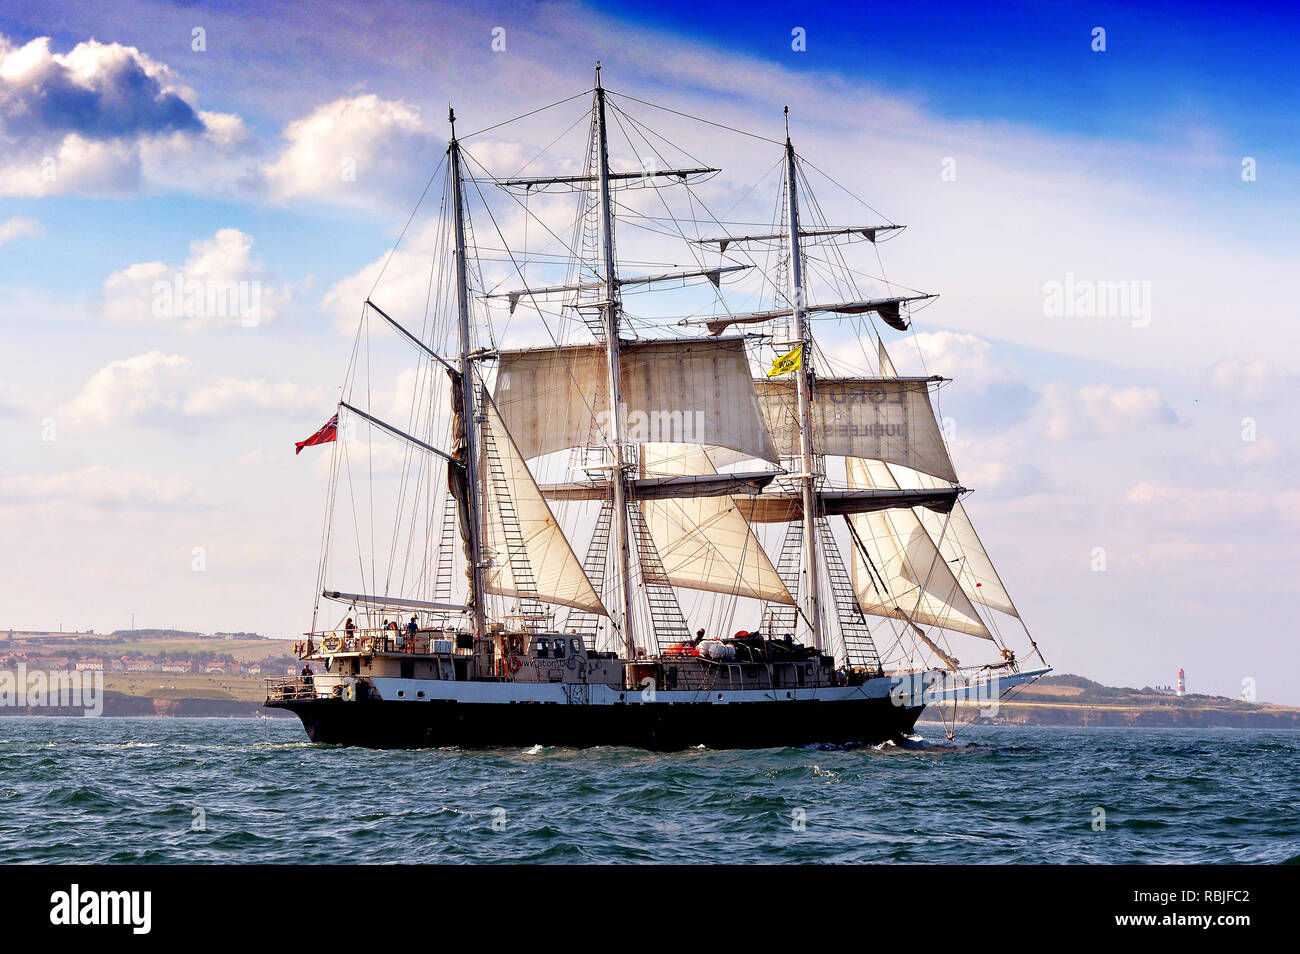 Sunderland's Tall Ships Race July 2018 vessels congregated in the River Wear and Port of Sunderland, Northeast, UK - held annually in European waters - Stock Image